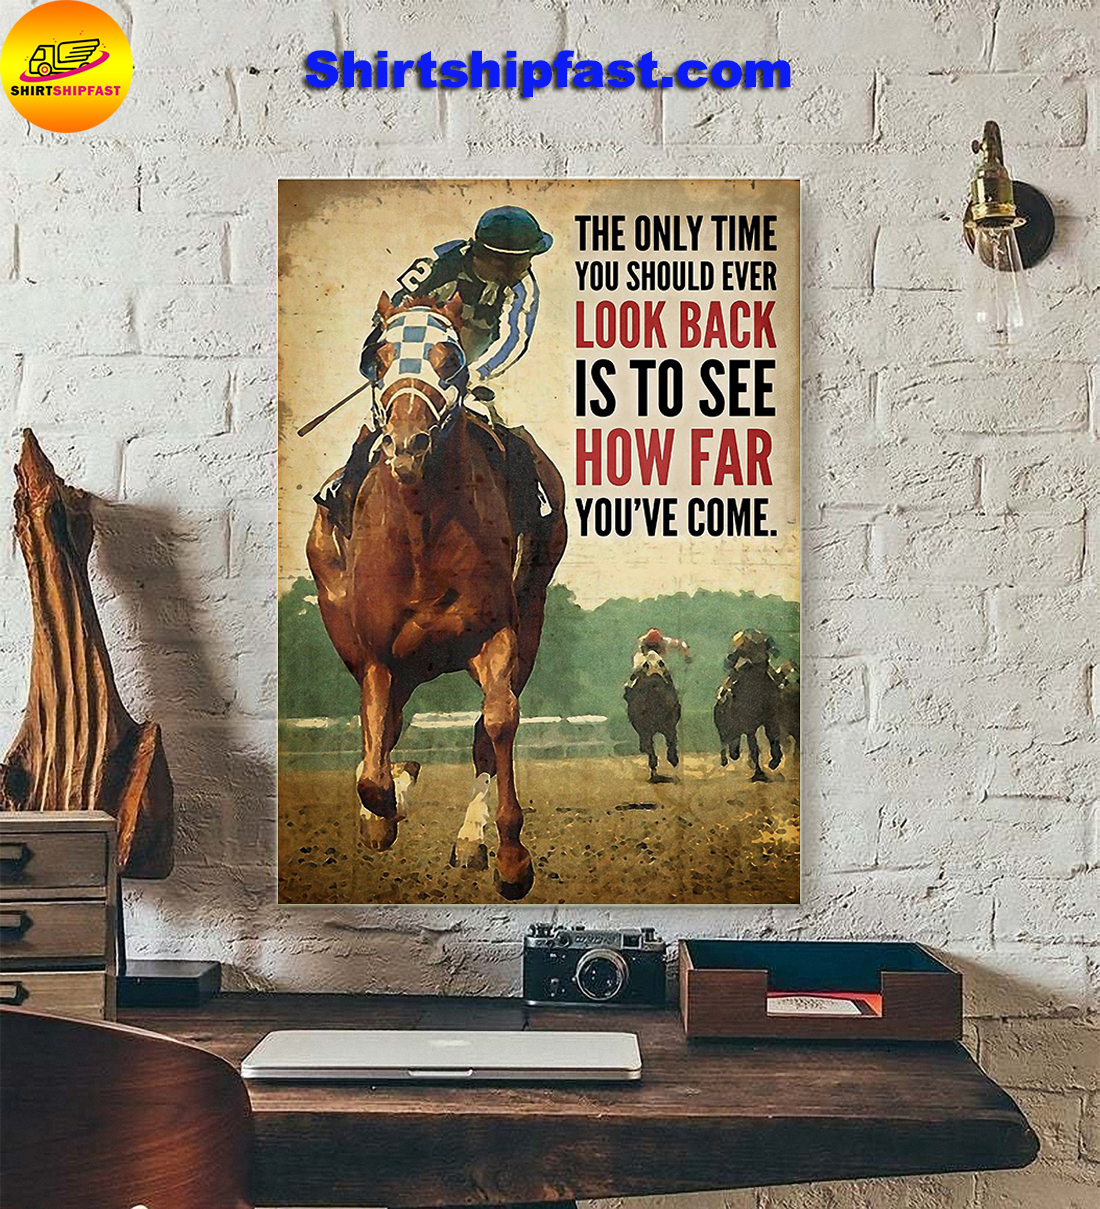 Secretariat horce racing The only time you should ever look back is to see how far you've come poster - Picture 3